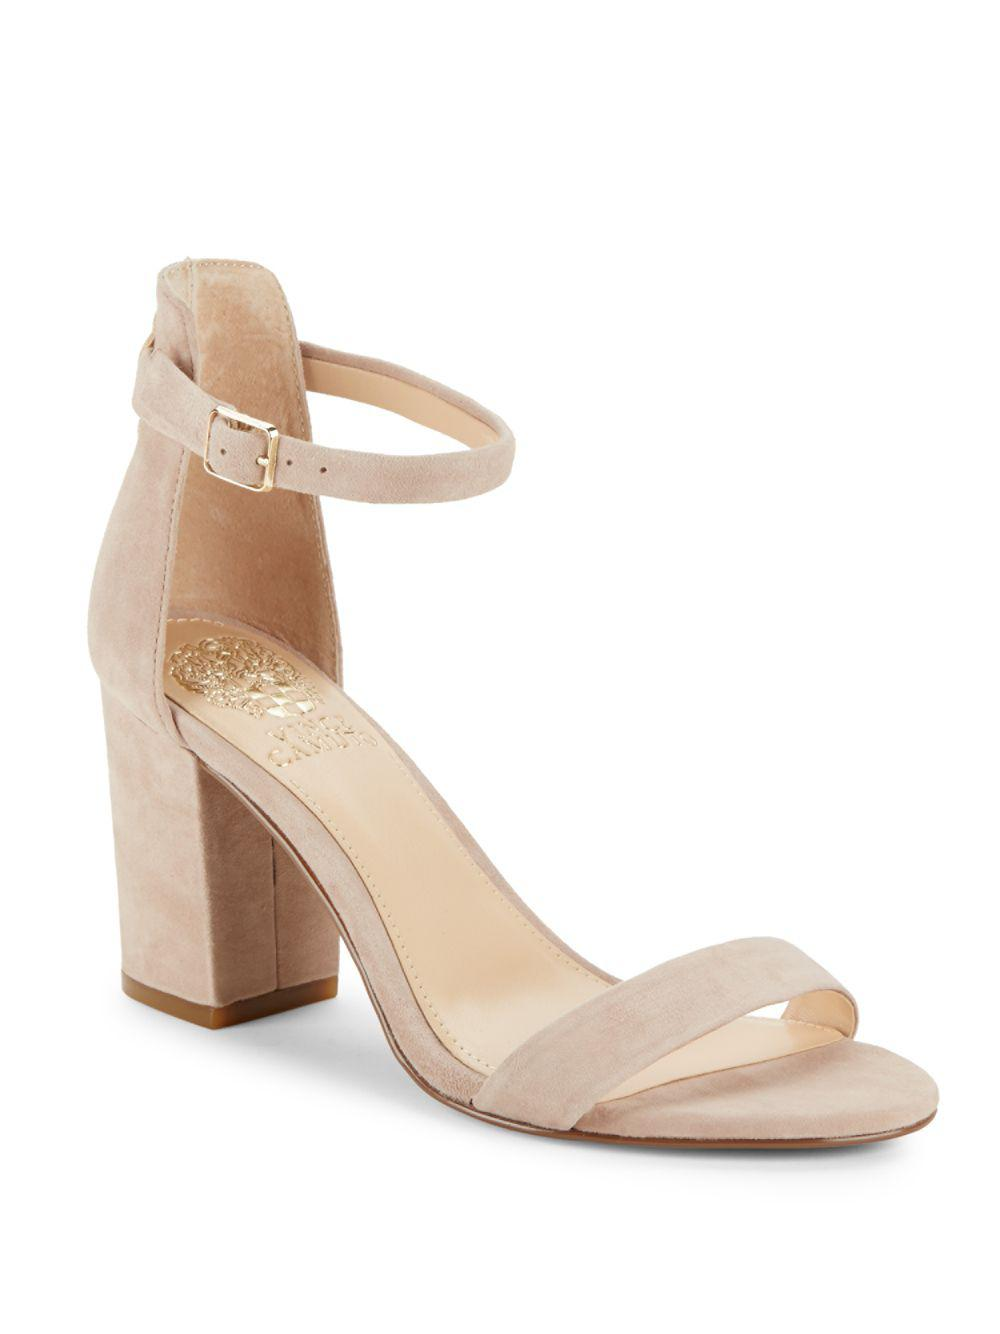 56a3ca3fee88 Lyst - Vince Camuto Beah Leather Block Heel Sandals in Natural